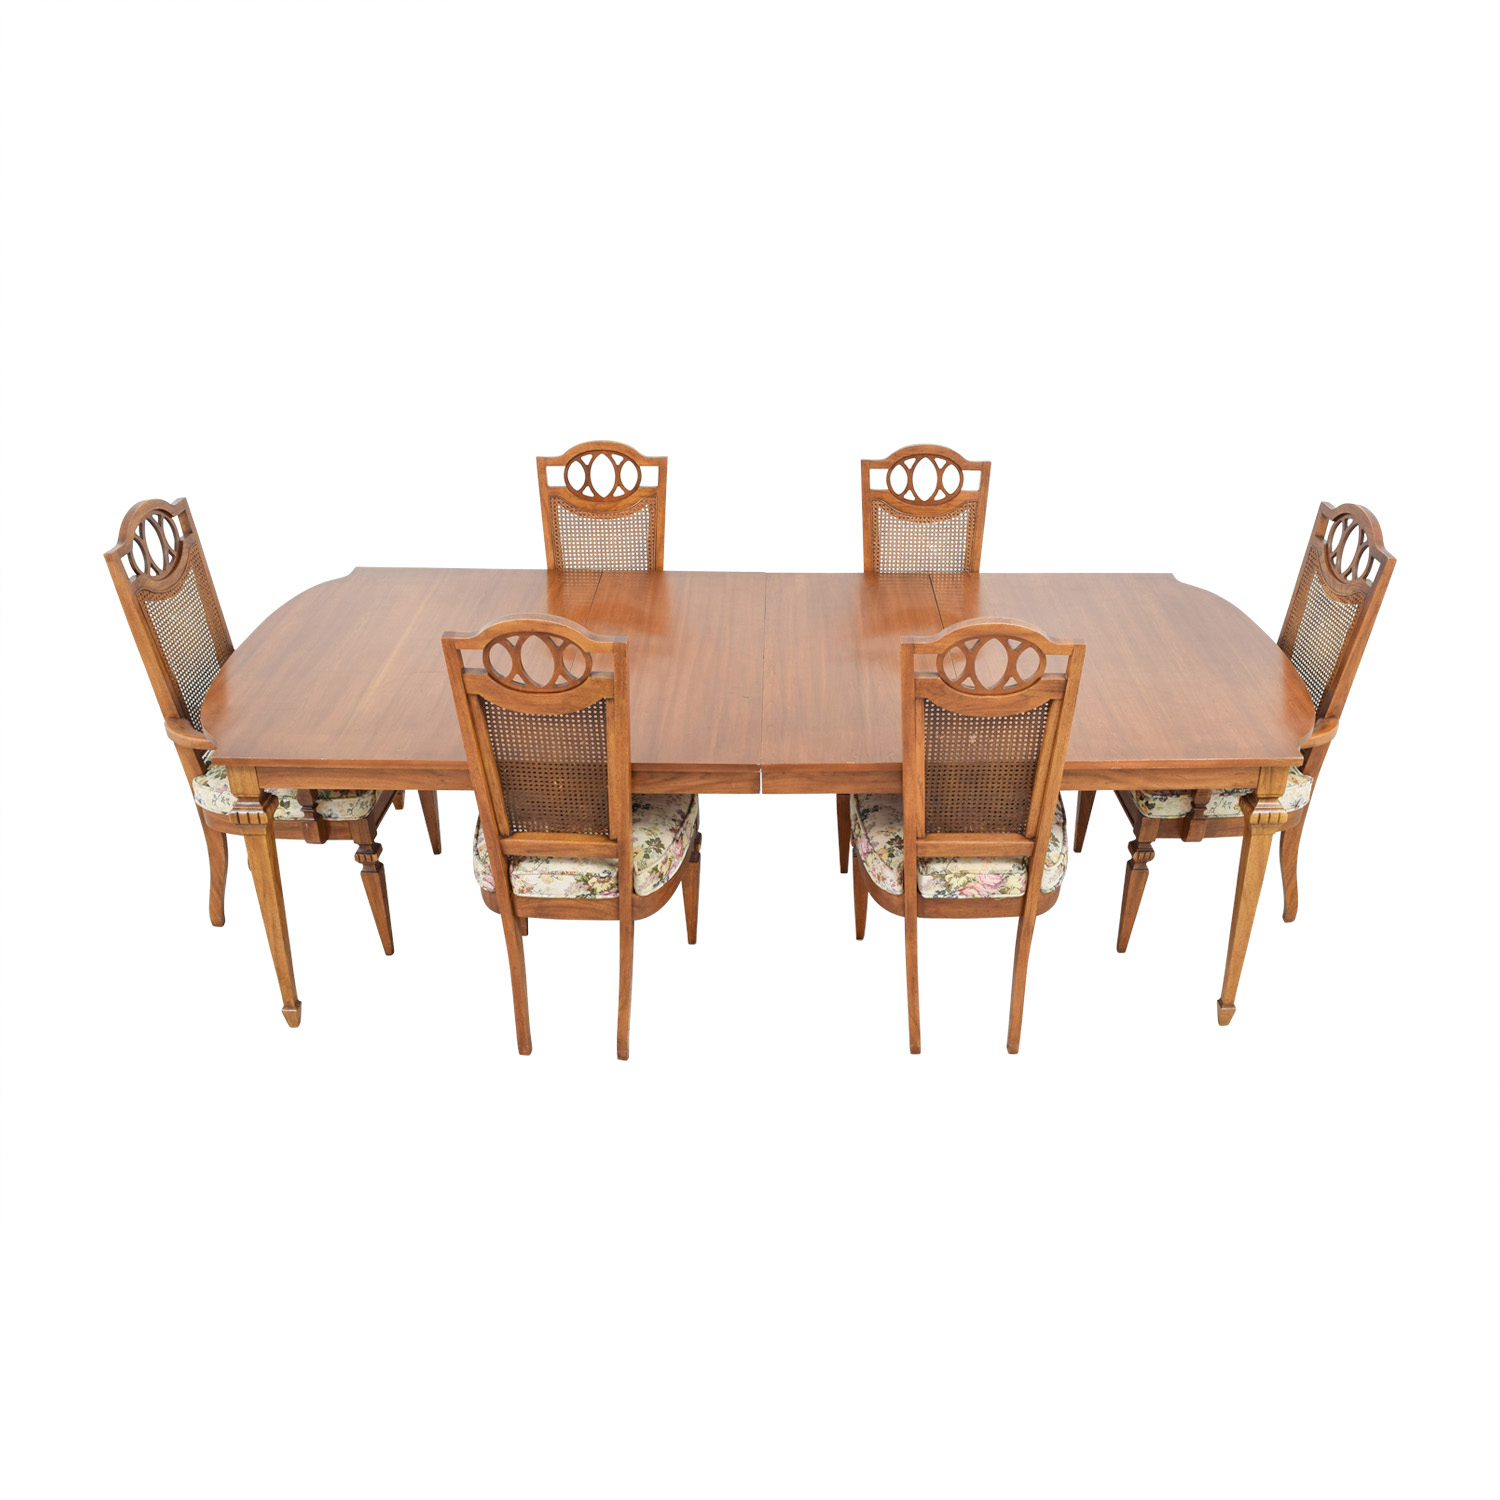 Italian Dining Set with Leaf Extensions and Floral Upholstered Chairs